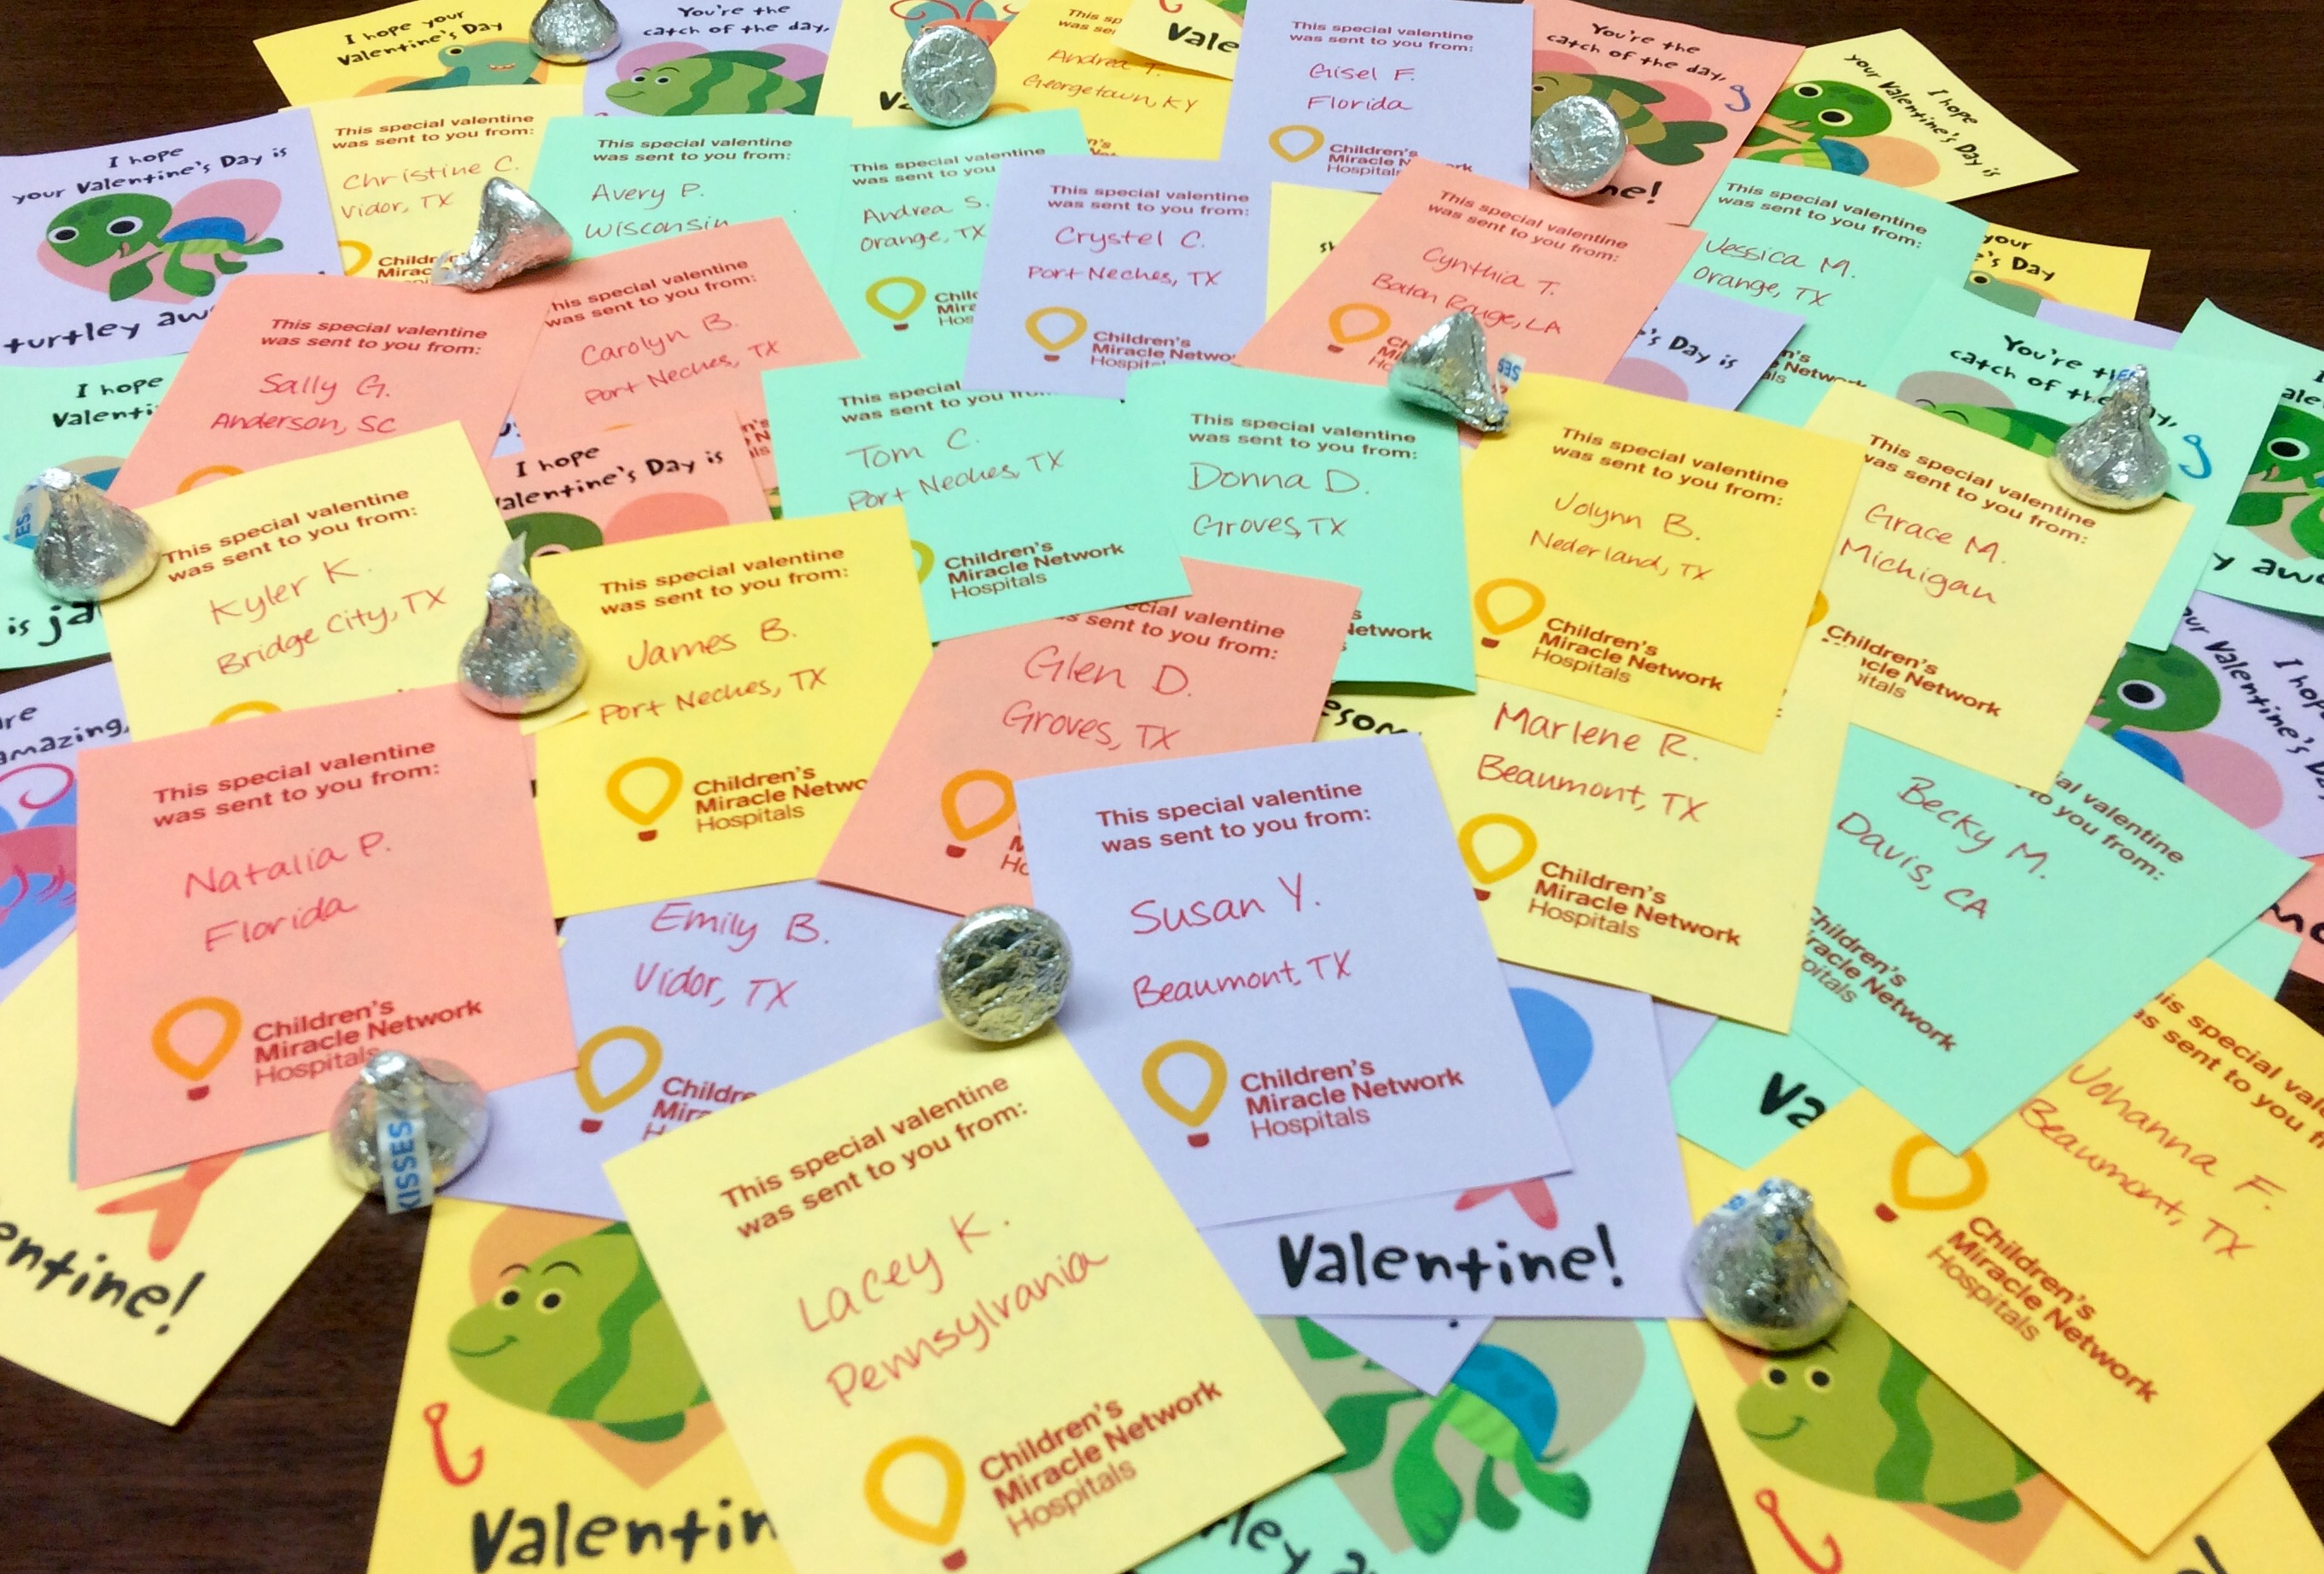 Valentines from Community